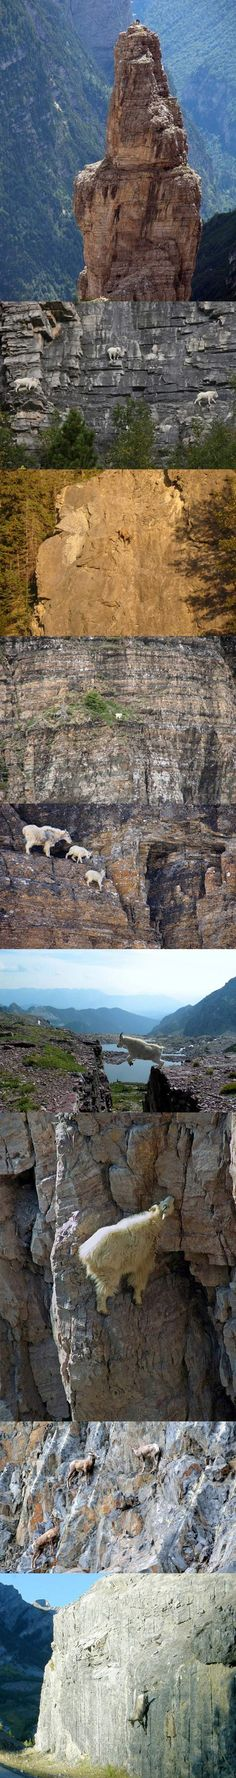 Goats climbing mountains